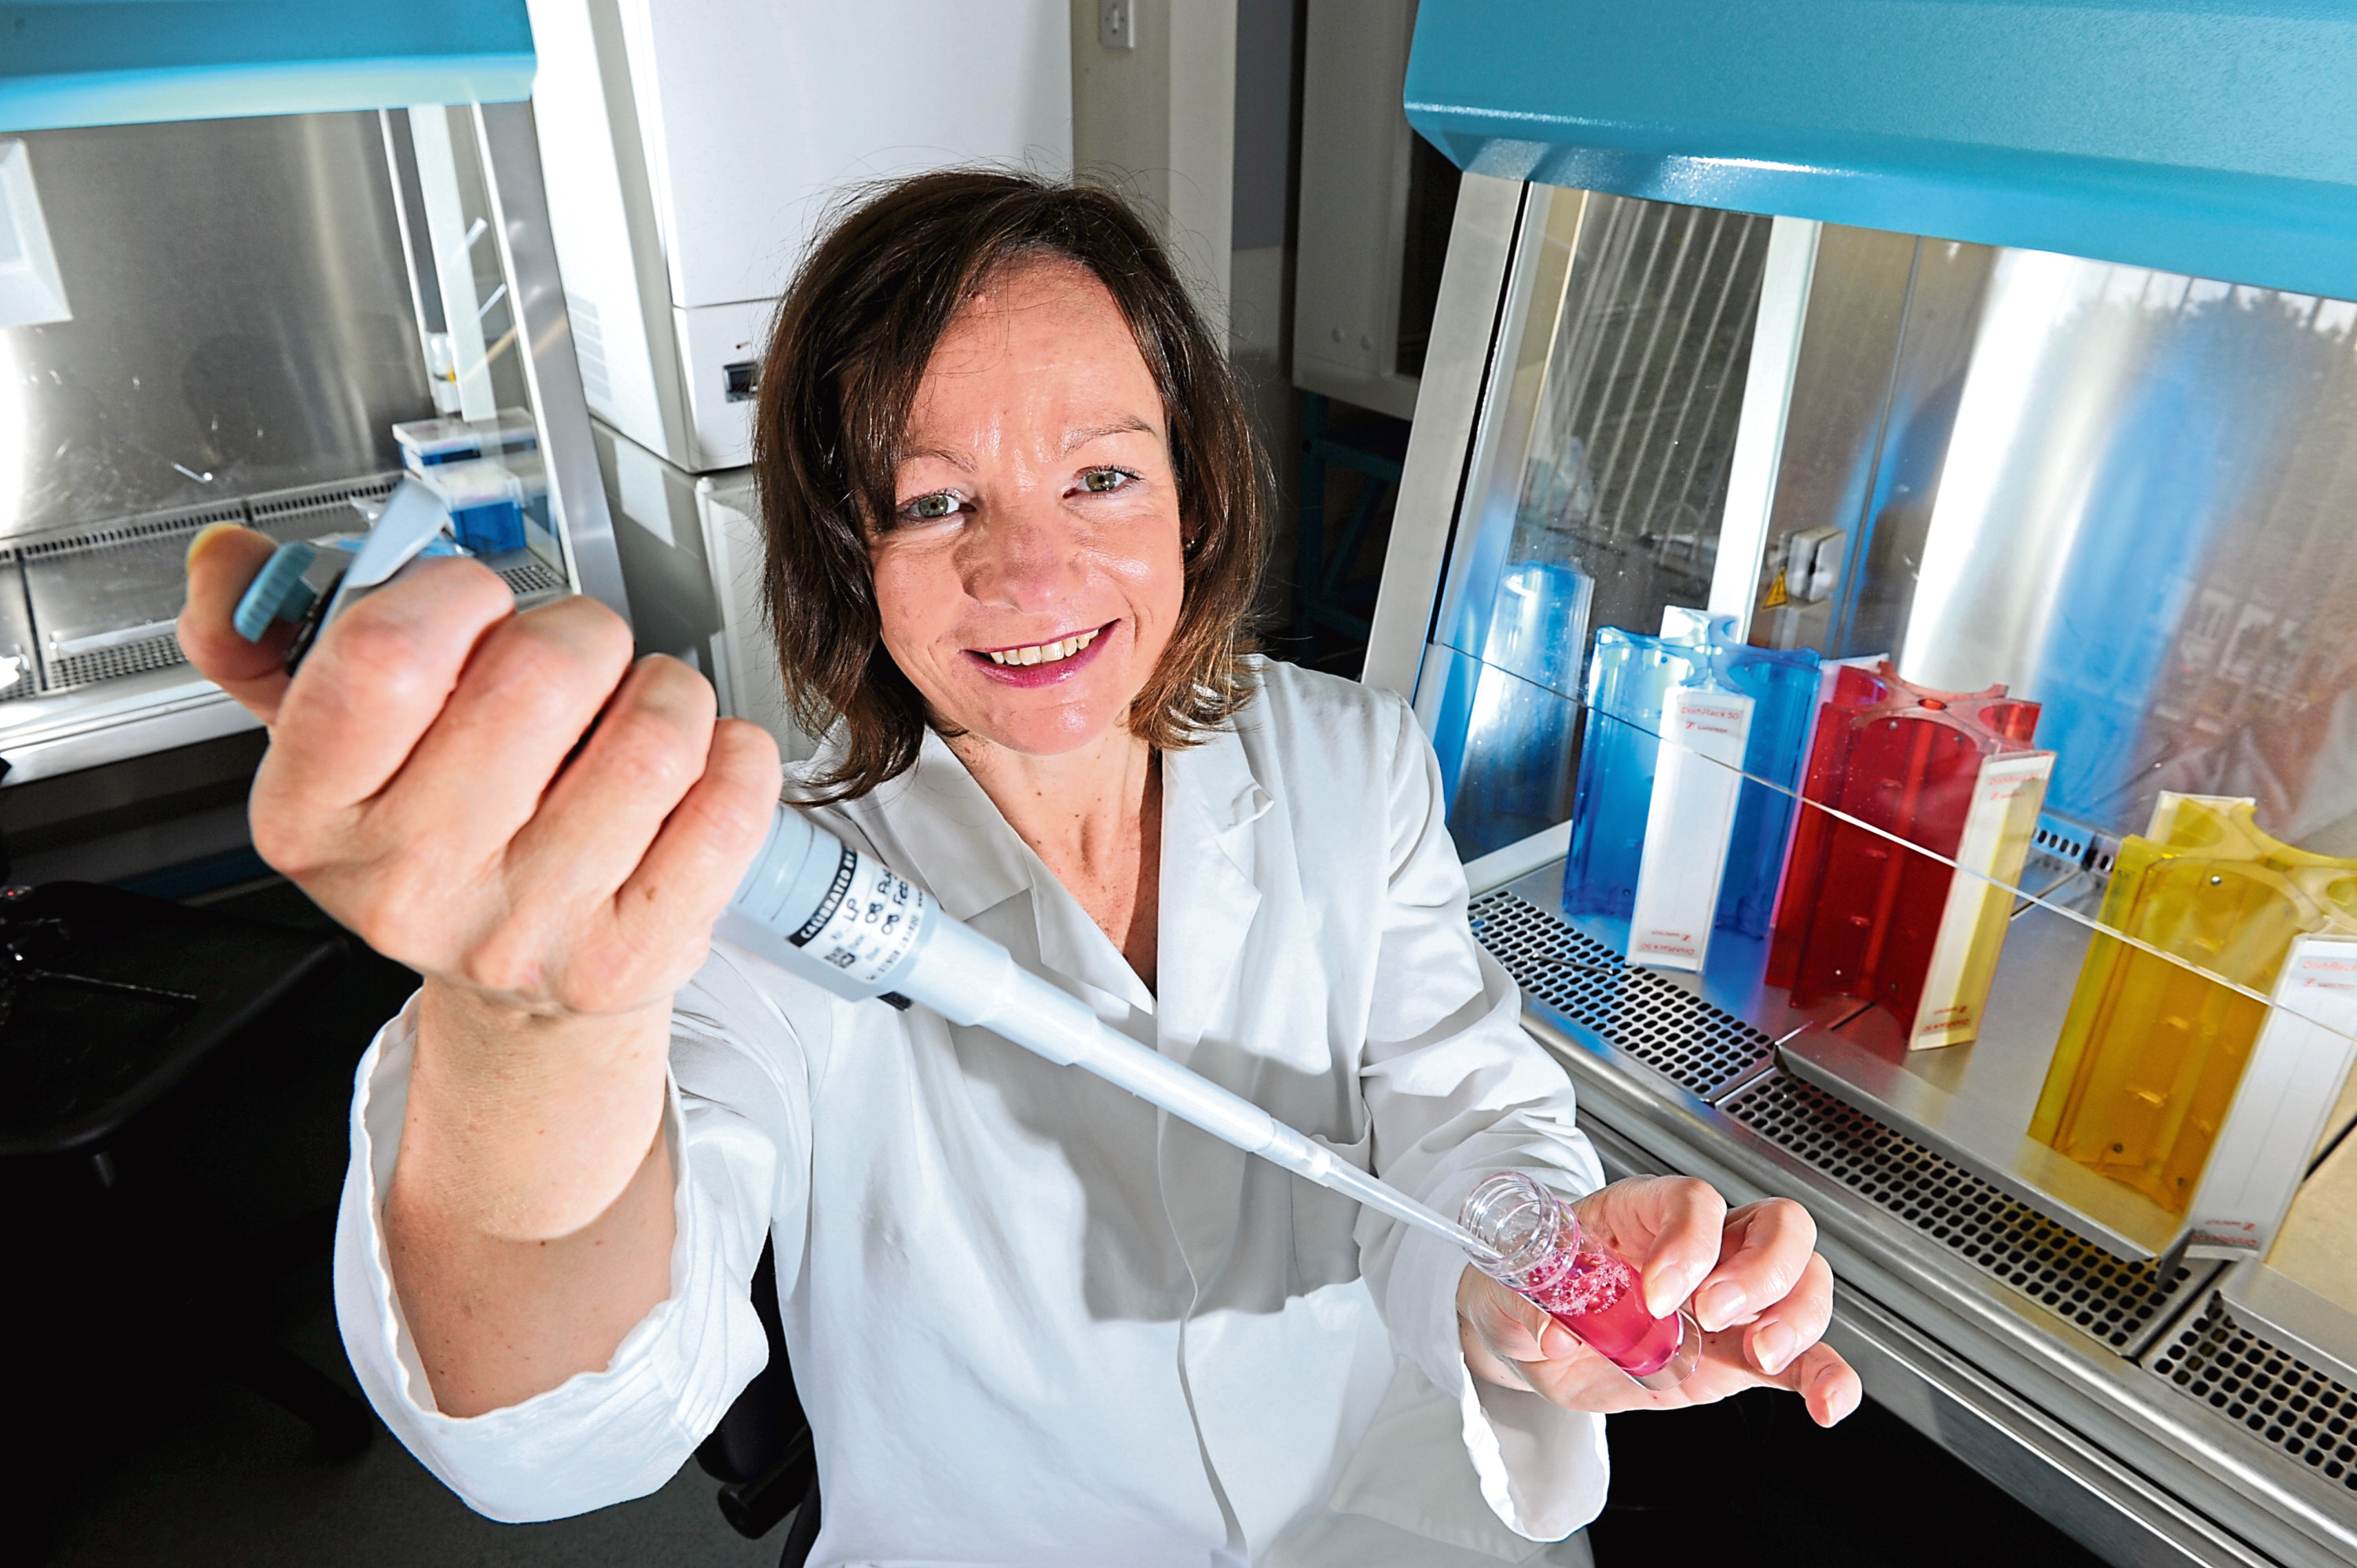 Deborah O'Neil, chief scientific officer for NovaBiotics Ltd, at their laboratory in the Cruickshank building, Craibstone.